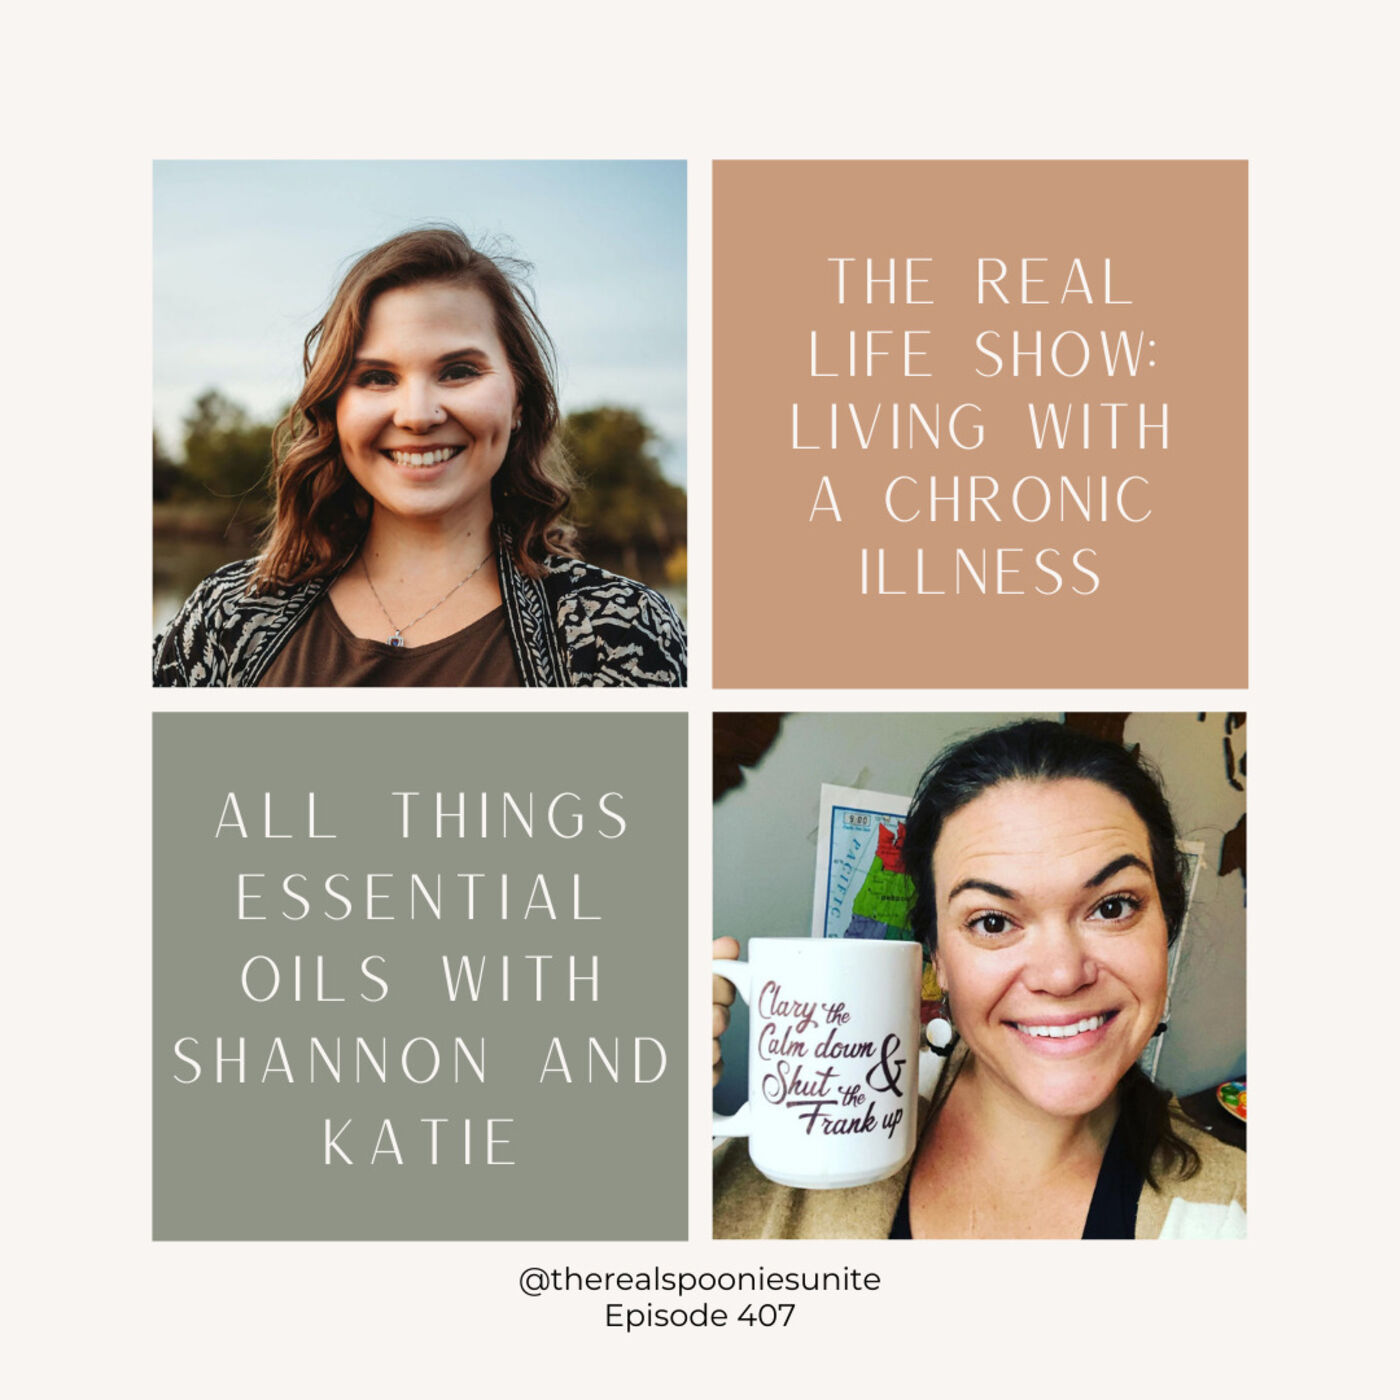 All Things Essential Oils with Shannon and Katie